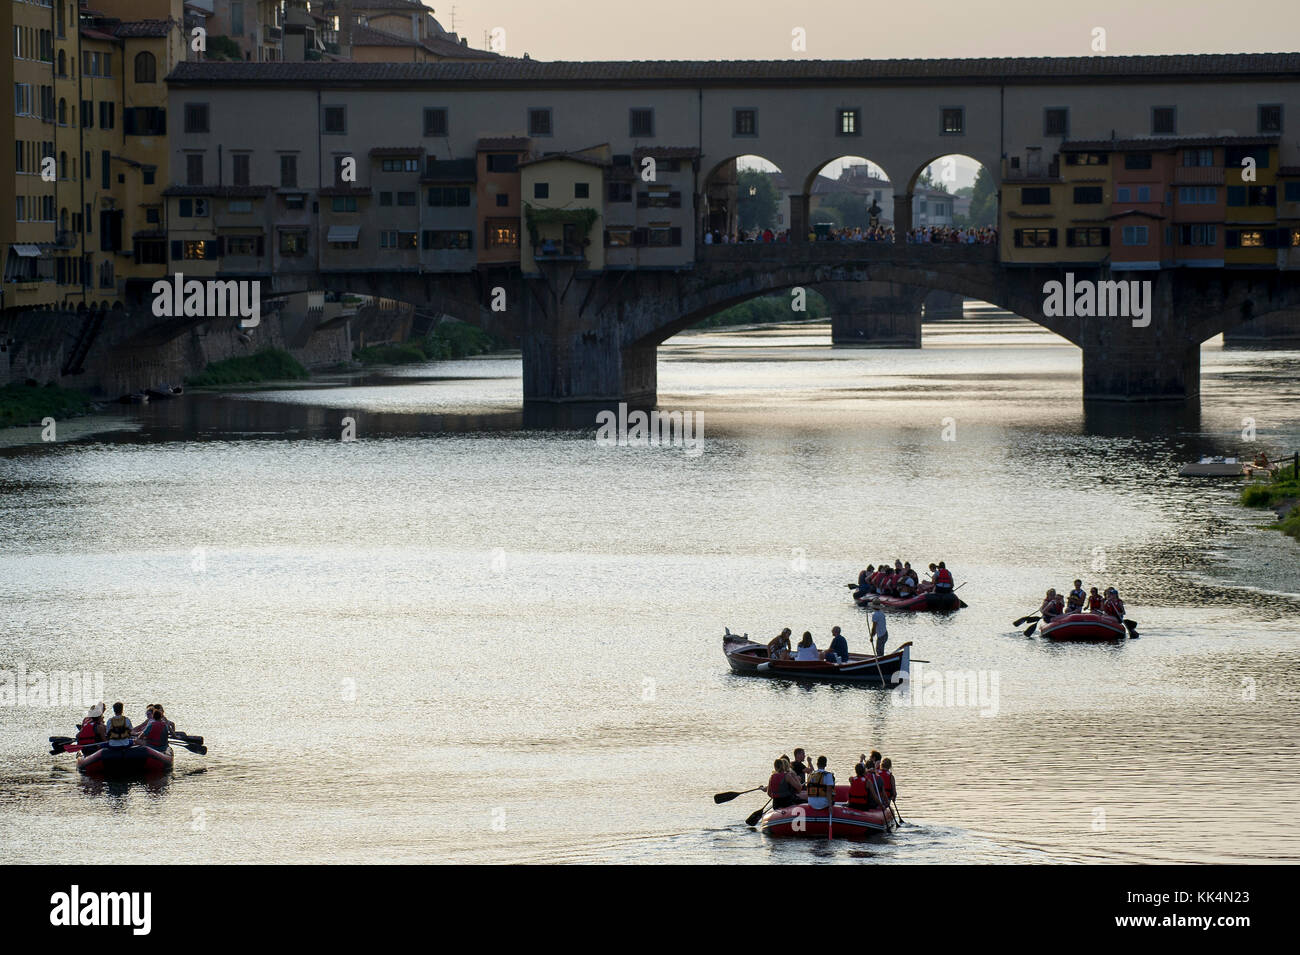 Leisure boat cruising on Arno river and Ponte Vecchio (Old Bridge) in Historic Centre of Firenze listed World Heritage - Stock Image